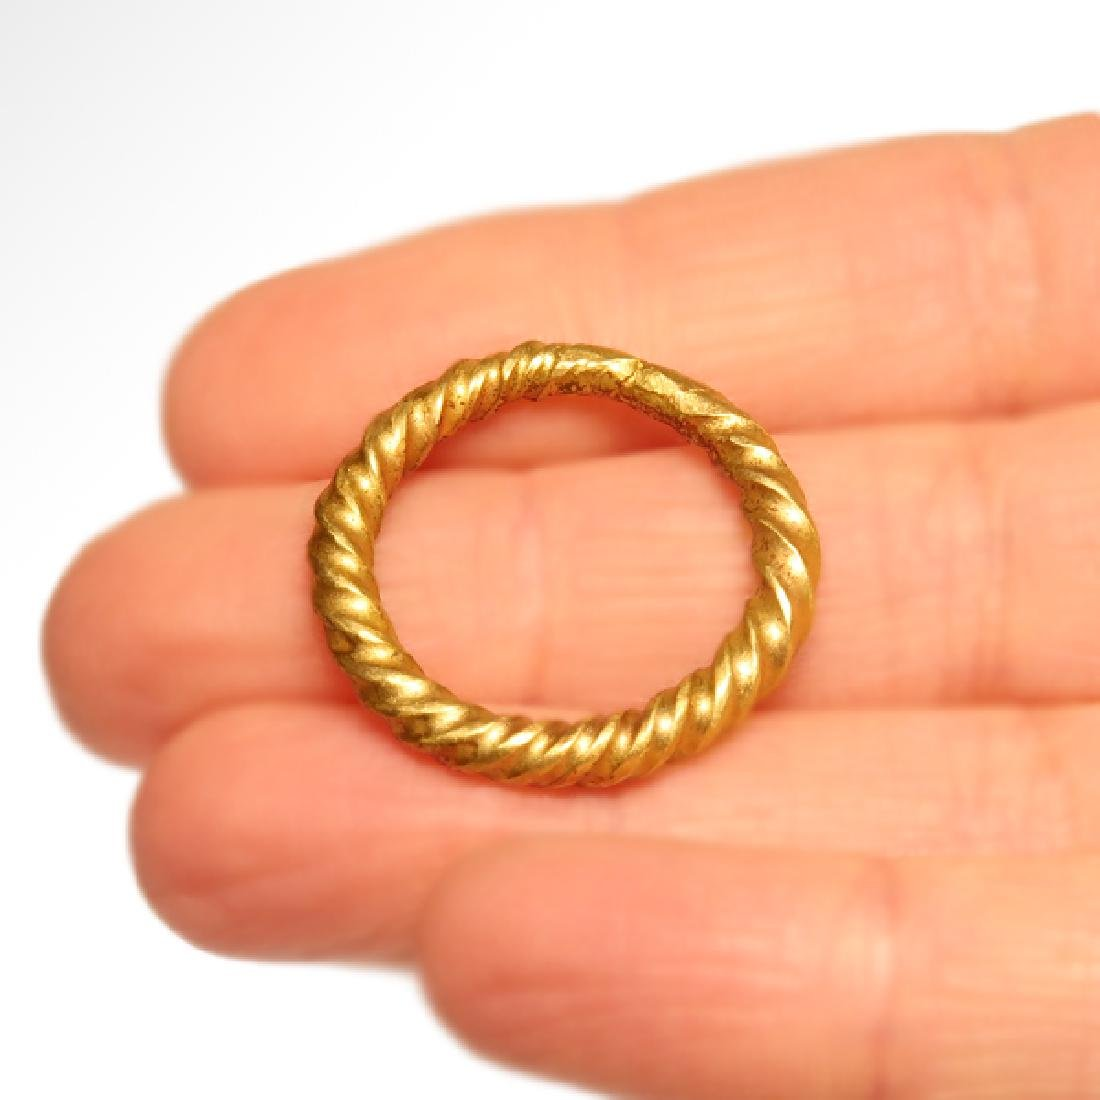 Viking Solid Gold Ring, c. 10th Century A.D. - 3